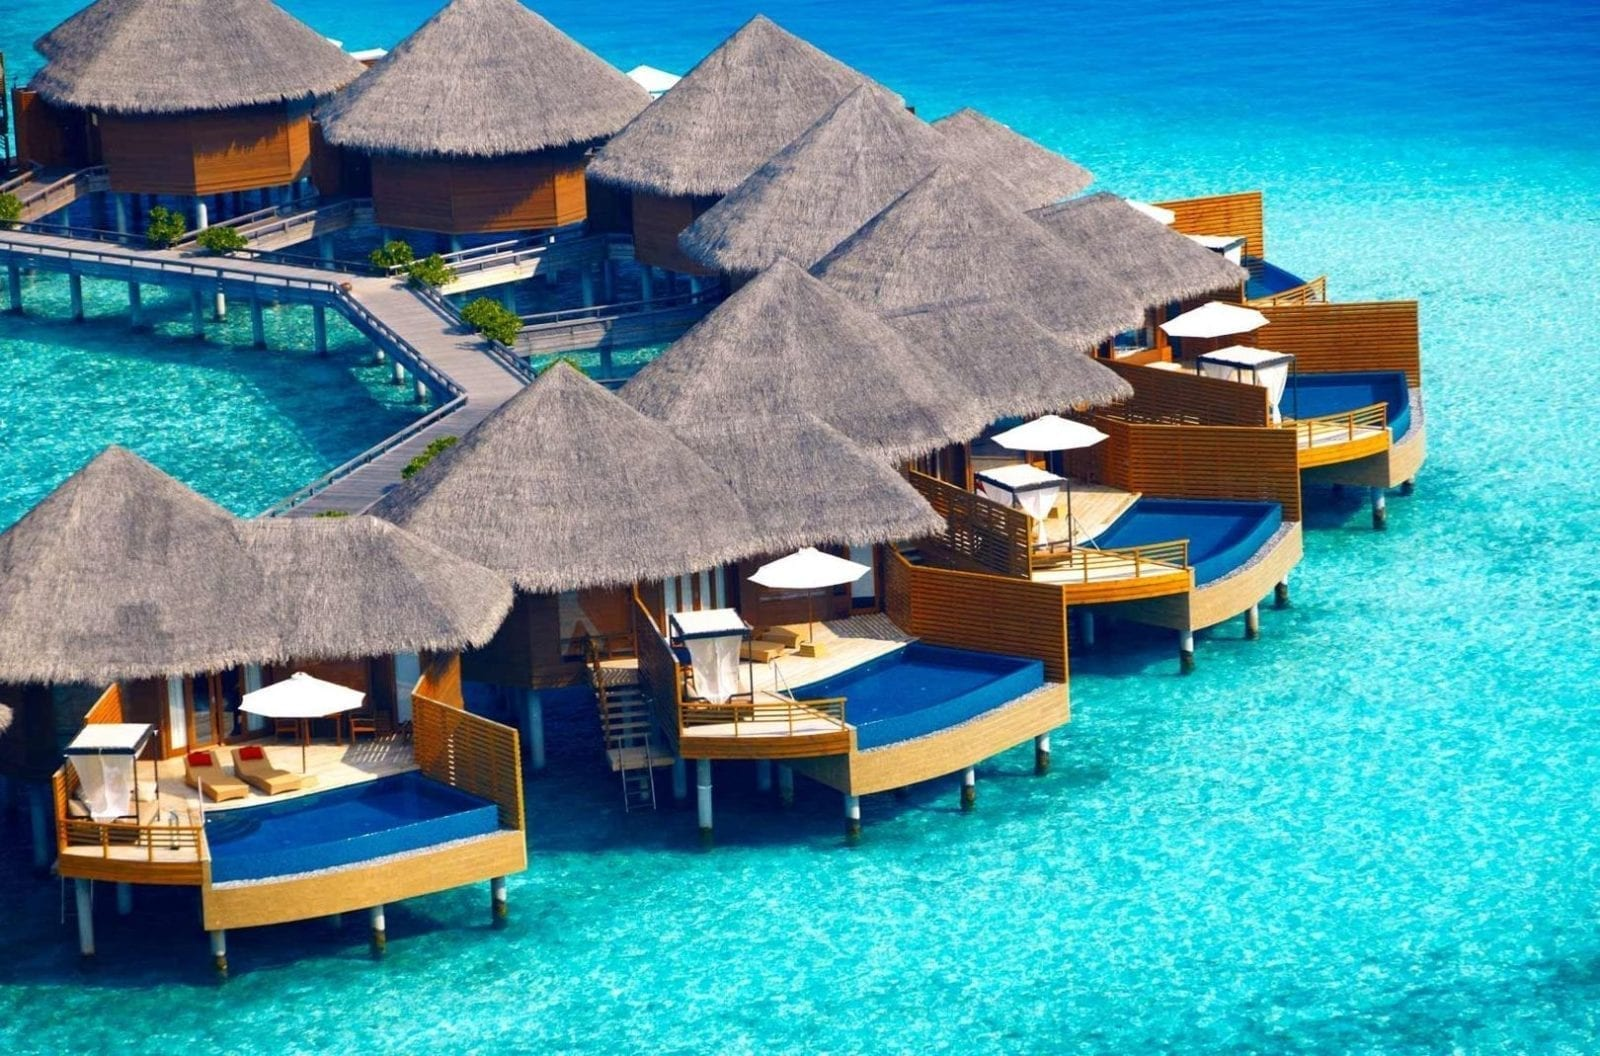 Baros Hotel Maldives Jetset Christina Top Private Island Resorts